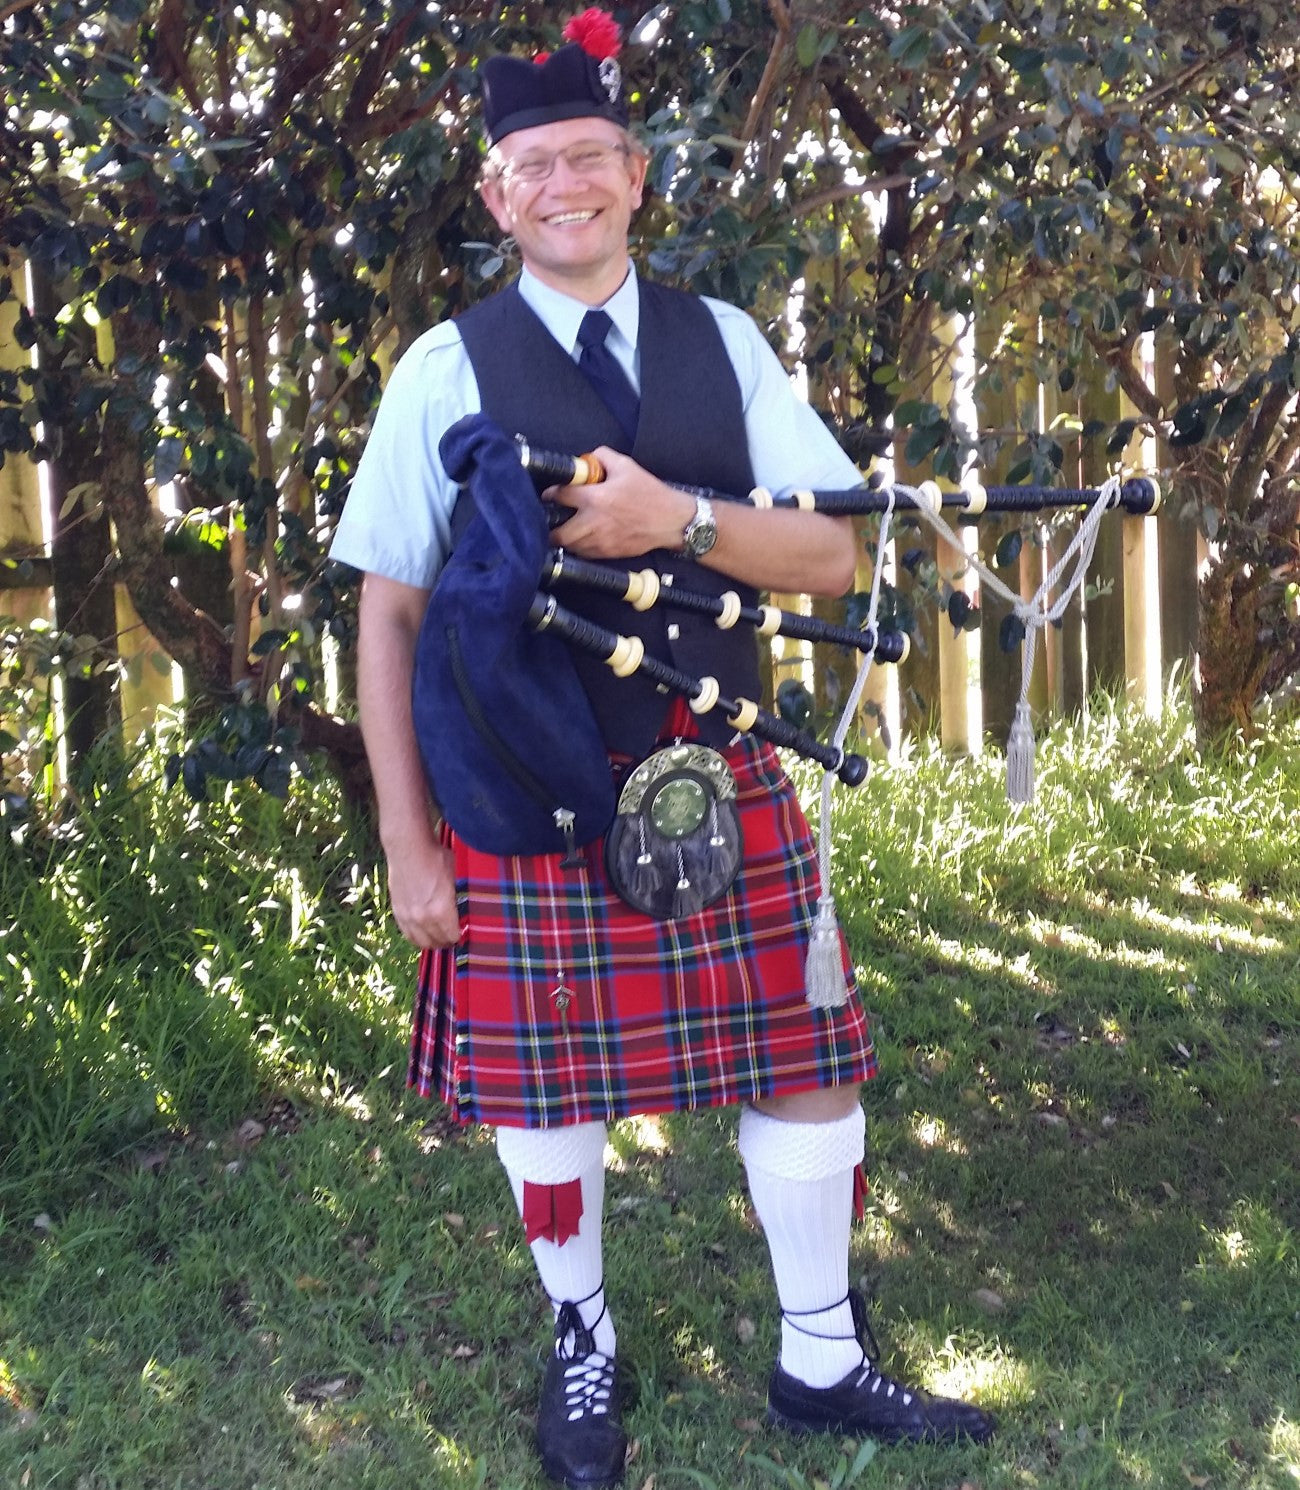 michel tent solo bagpipe player auckland pme entertainment